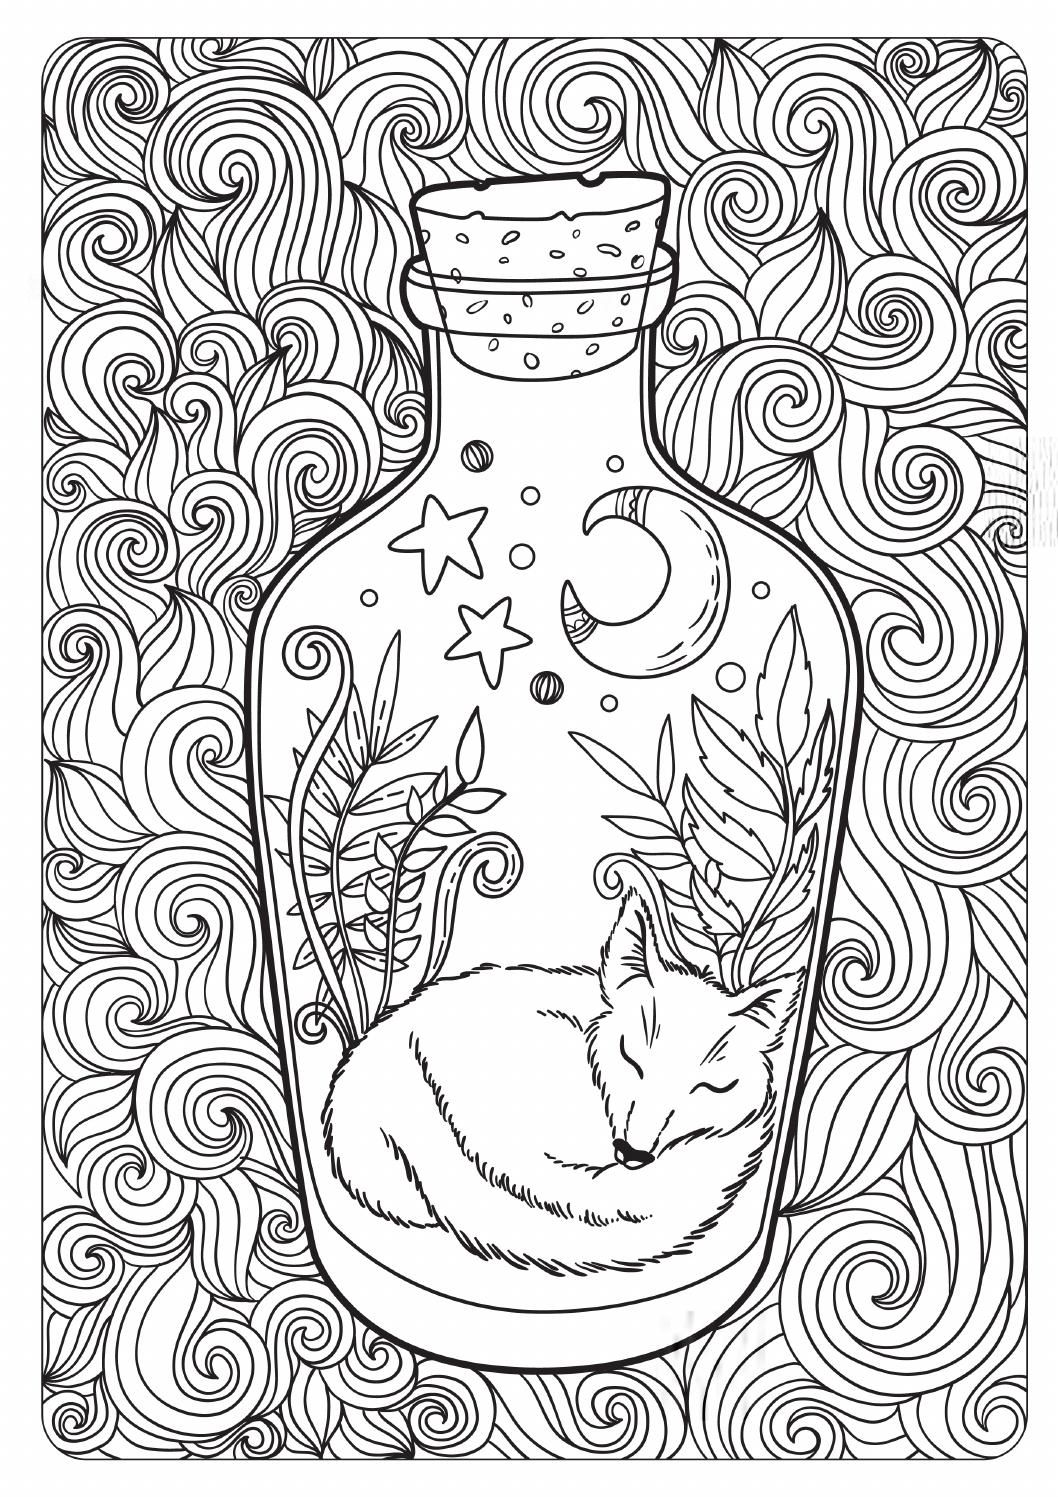 Stress coloring books - The Tales Of Old Forest Anti Stress Coloring Book By Maria Letta Issuu